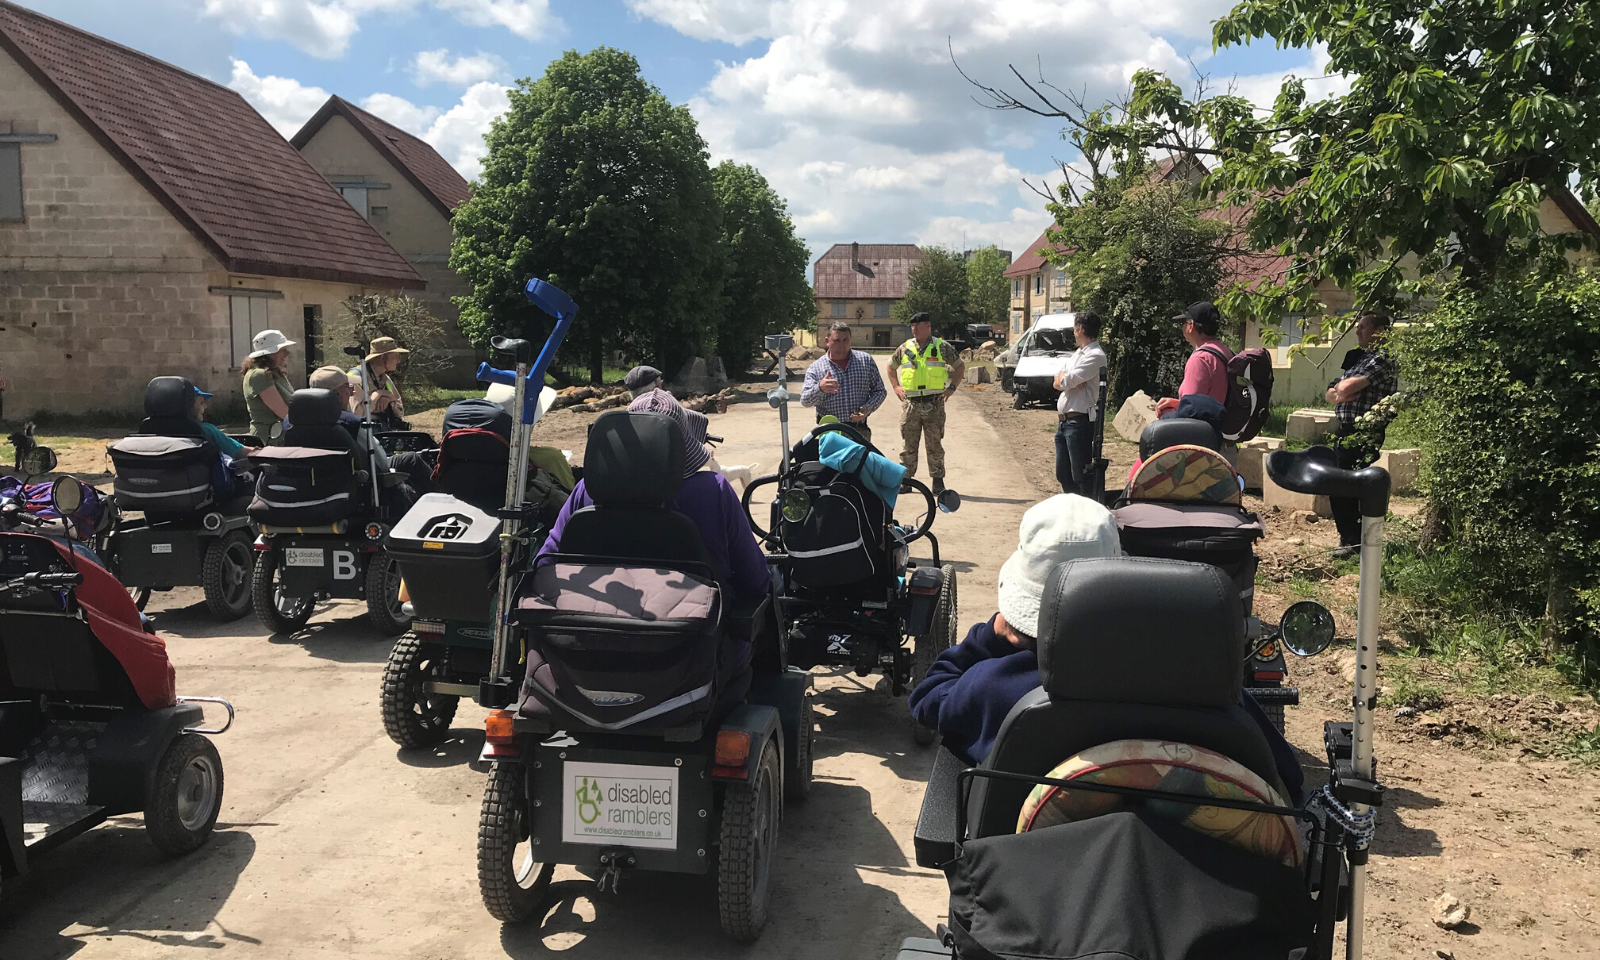 Welcoming the Disabled Ramblers to Salisbury Plain